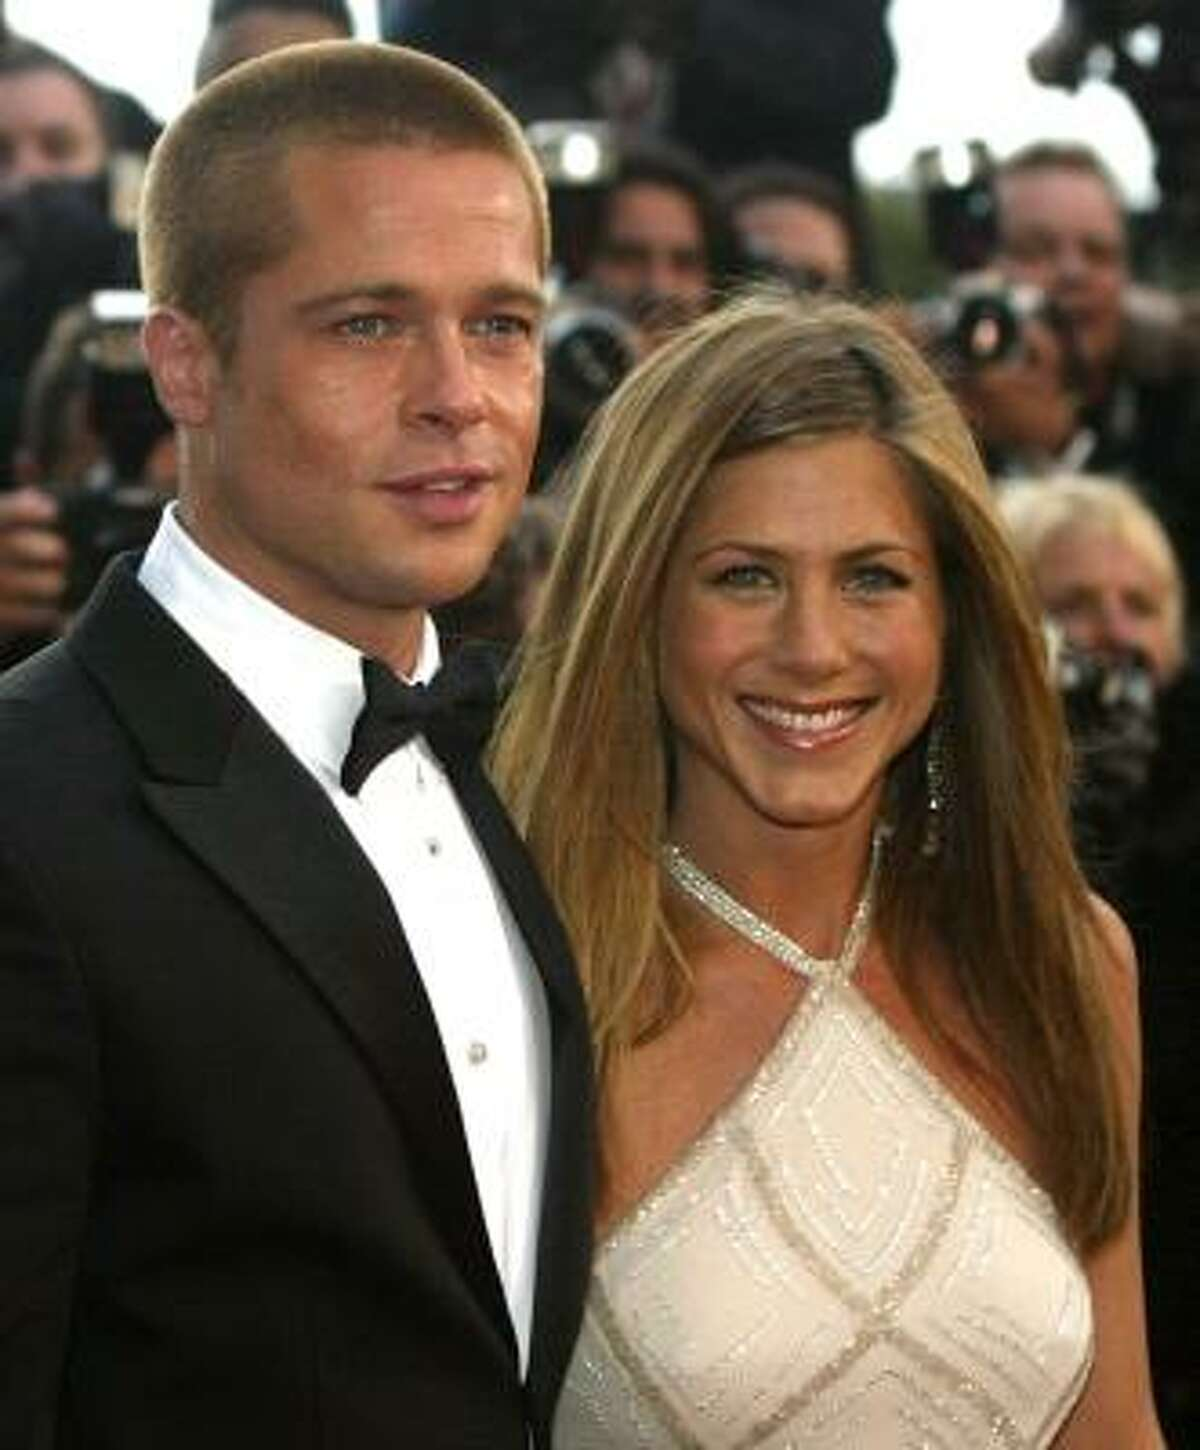 Things got out of control when Brad Pitt, left, and his former wife, Jennifer Aniston, split. Pitt went on to his relationship with Angelina Jolie, and t-shirts proclaiming